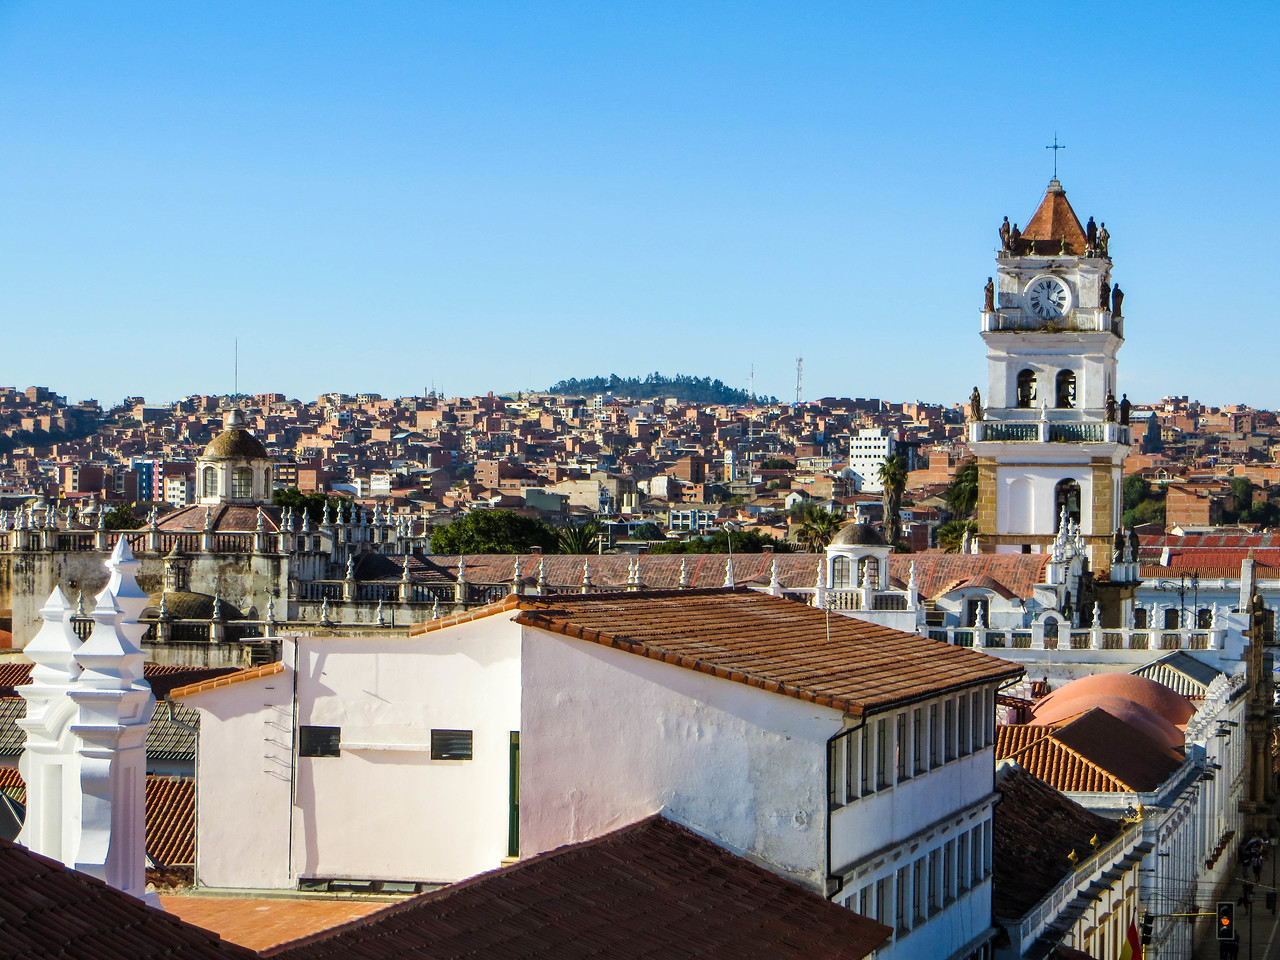 The Rooftops of Sucre Bolivia